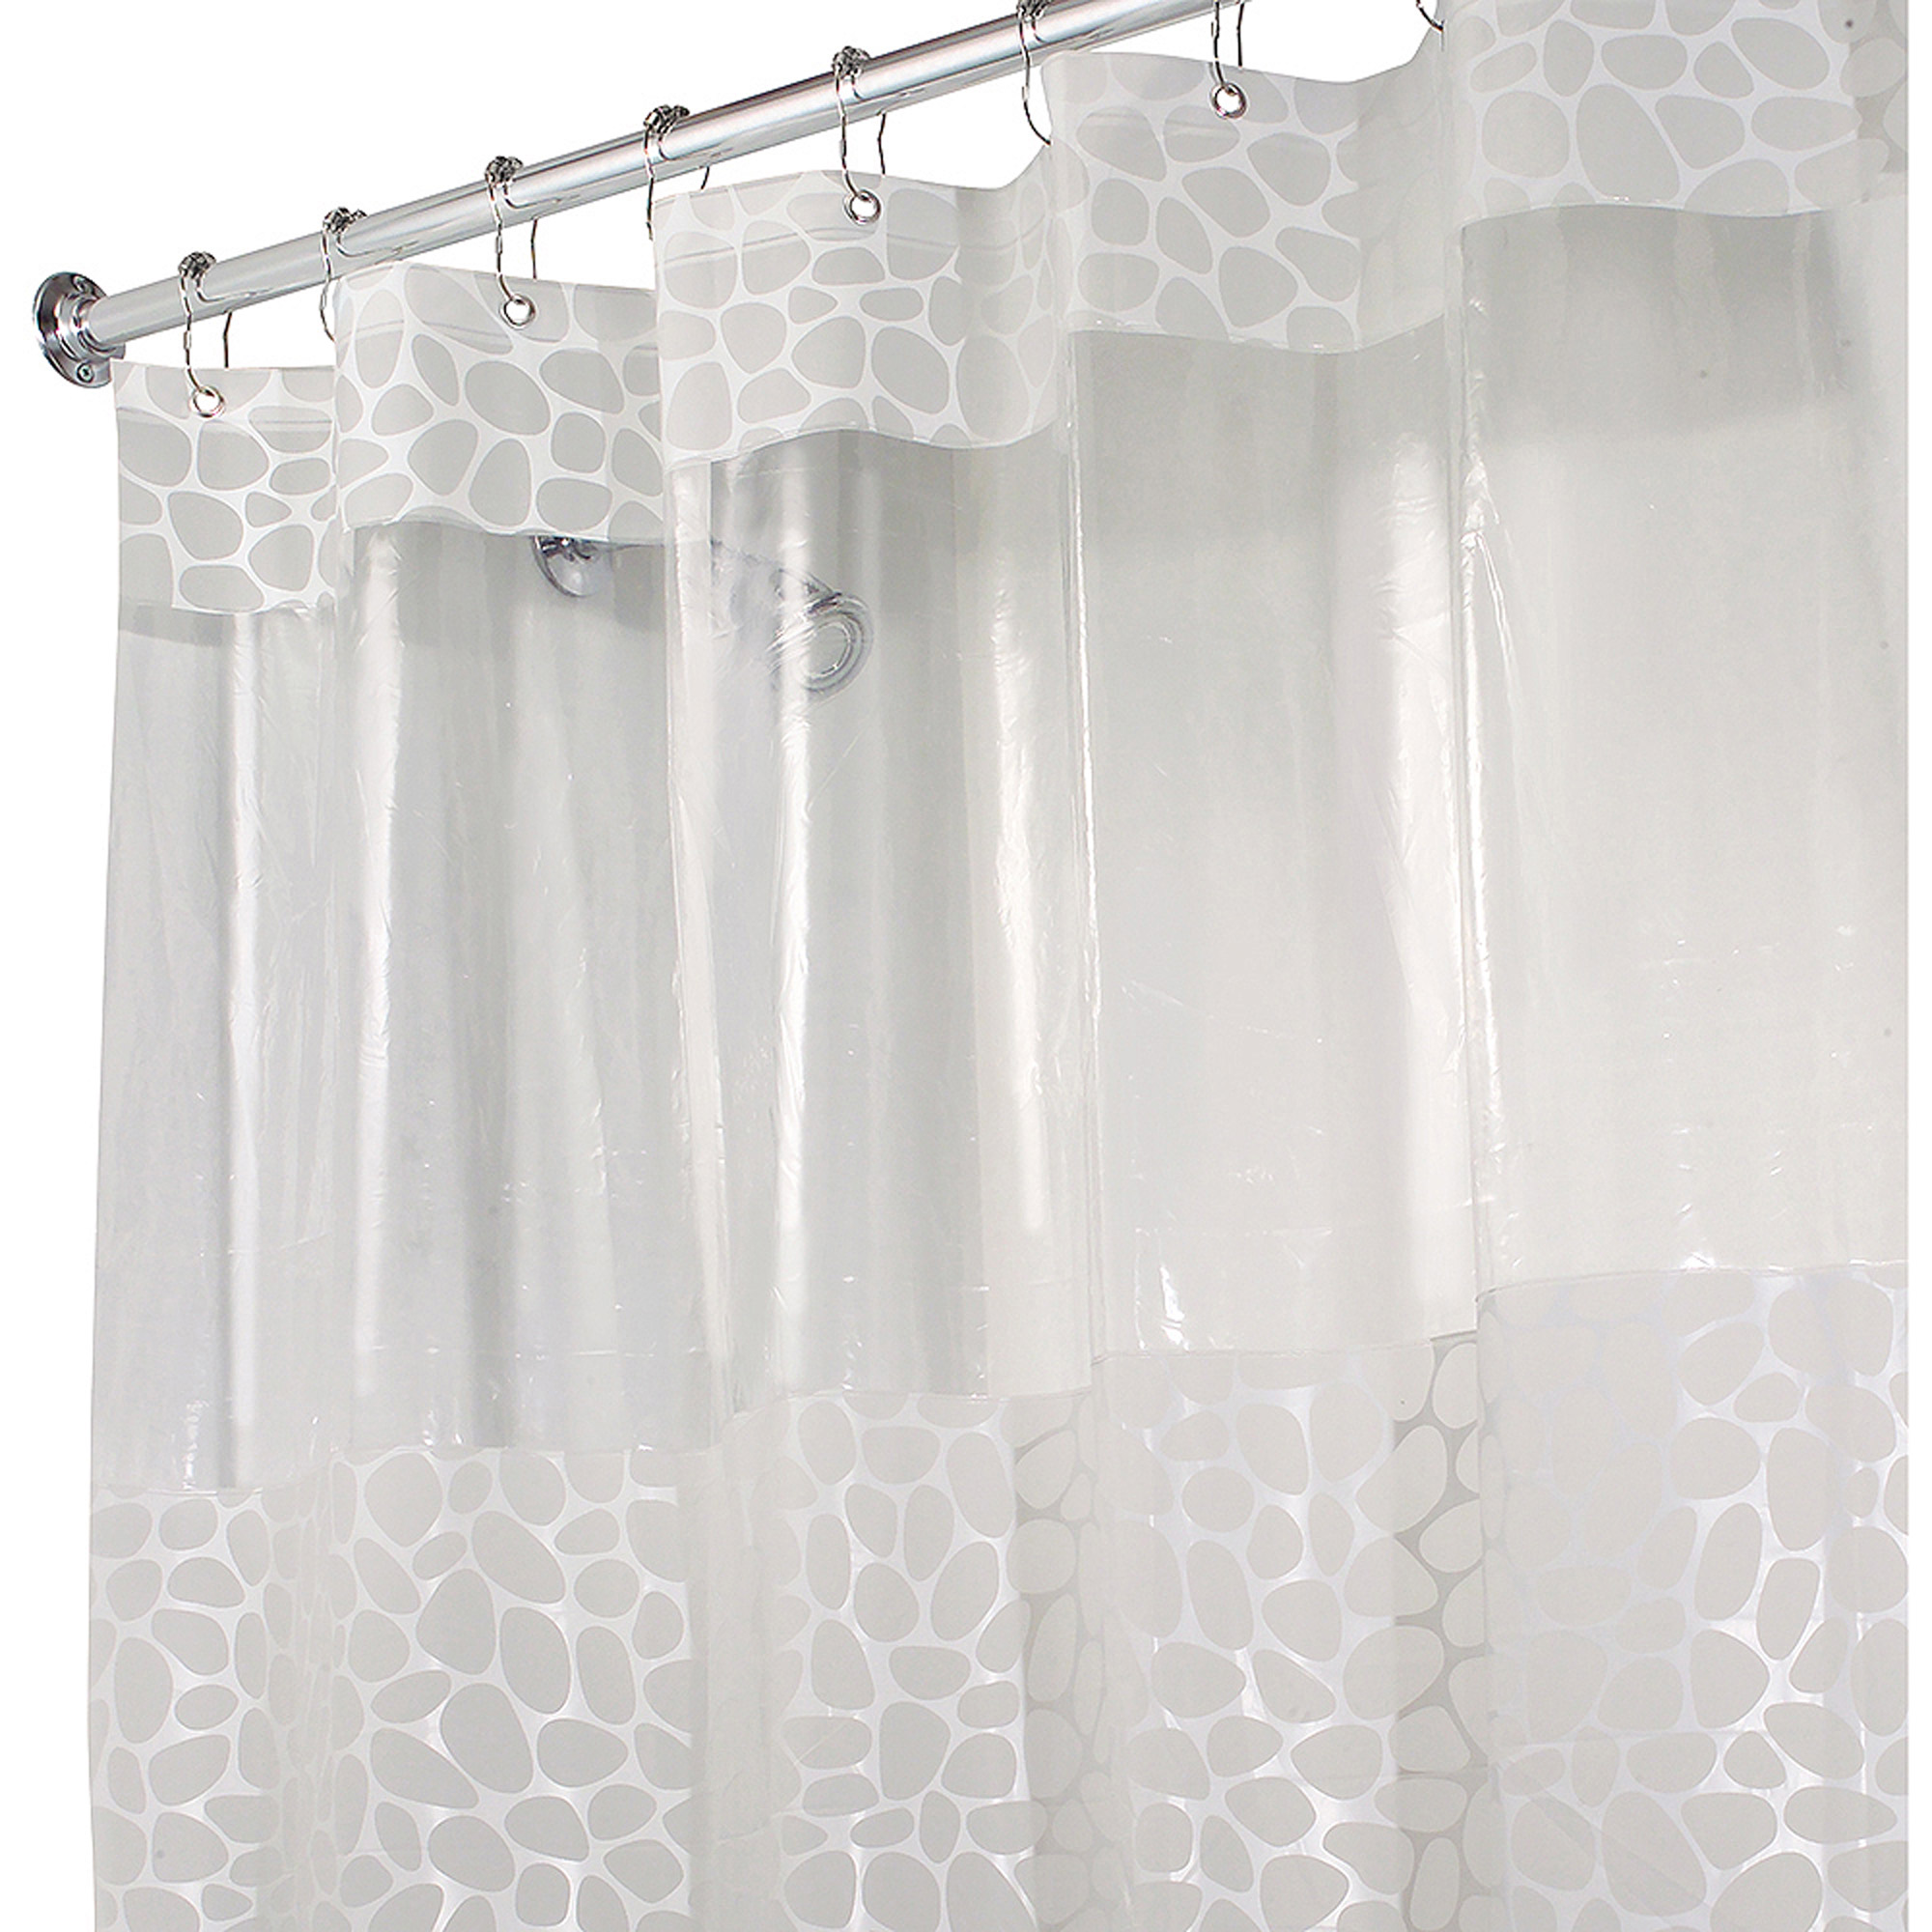 InterDesign Pebblz View PEVA Shower Curtain